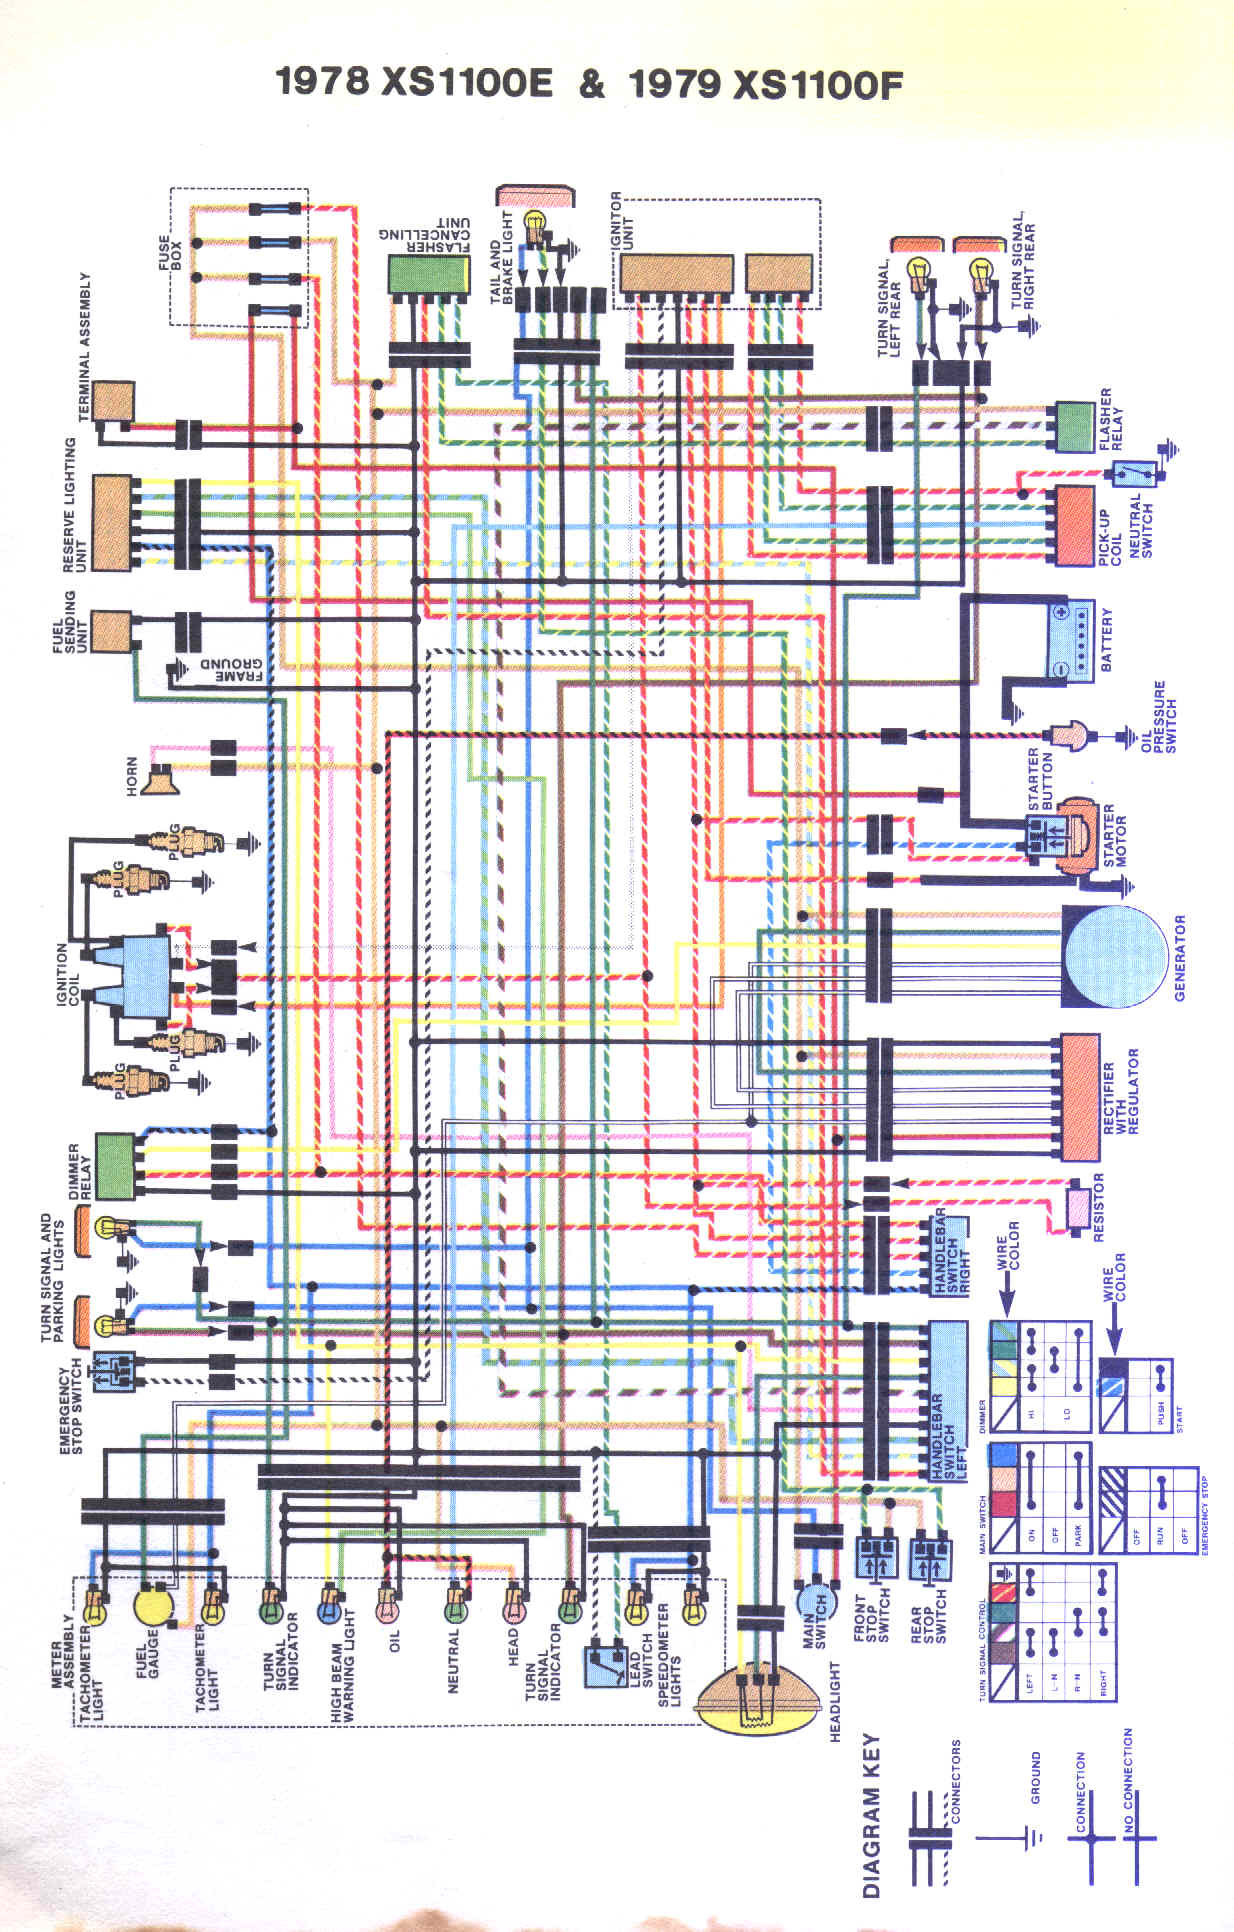 Wiring Diagrams Diagram In Series 197879 Xs11